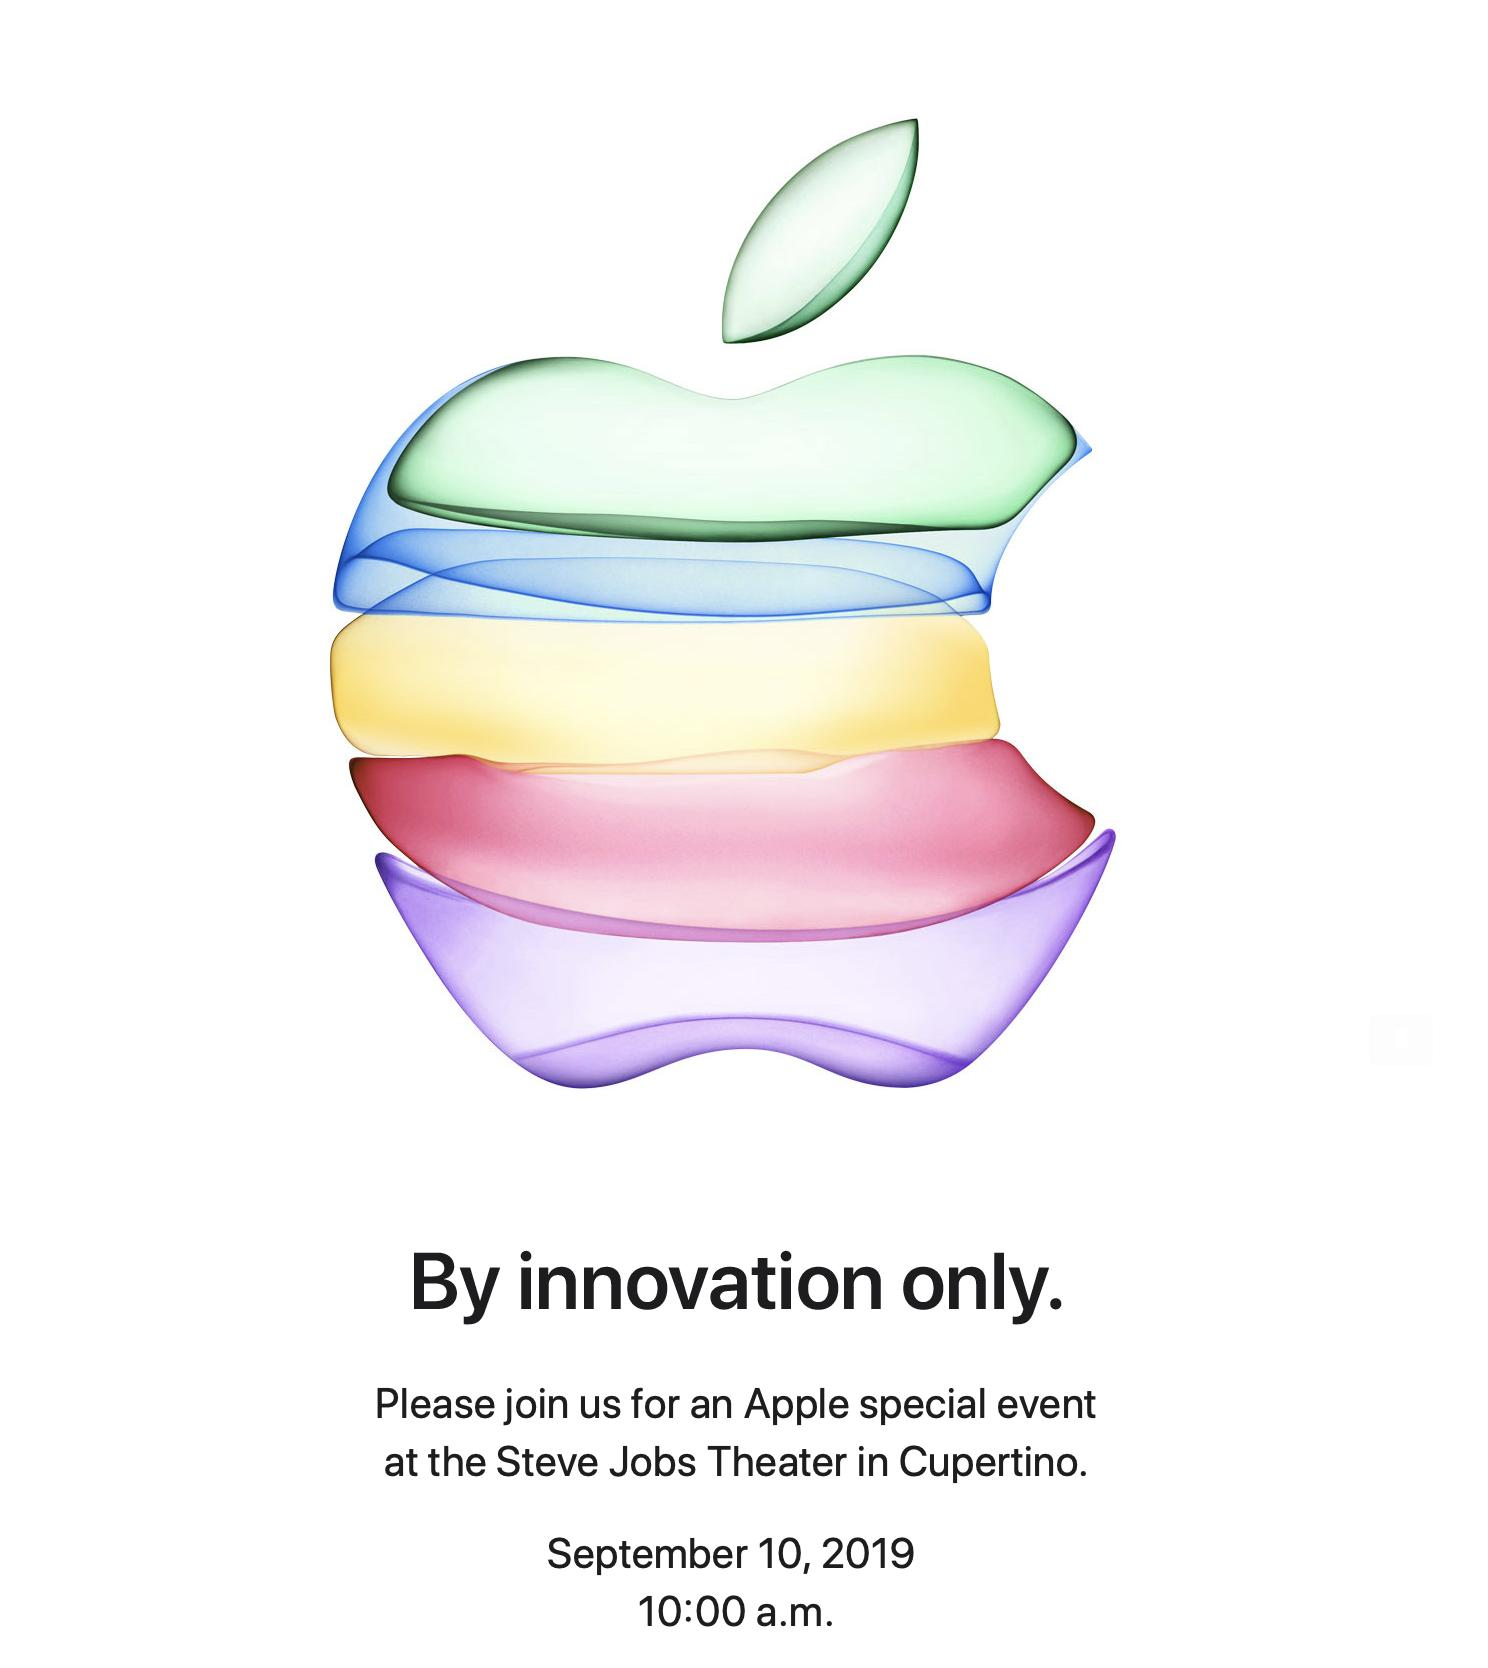 Forget the iPhone 11, everyone's talking about this colourful new Apple logo   Creative Bloq